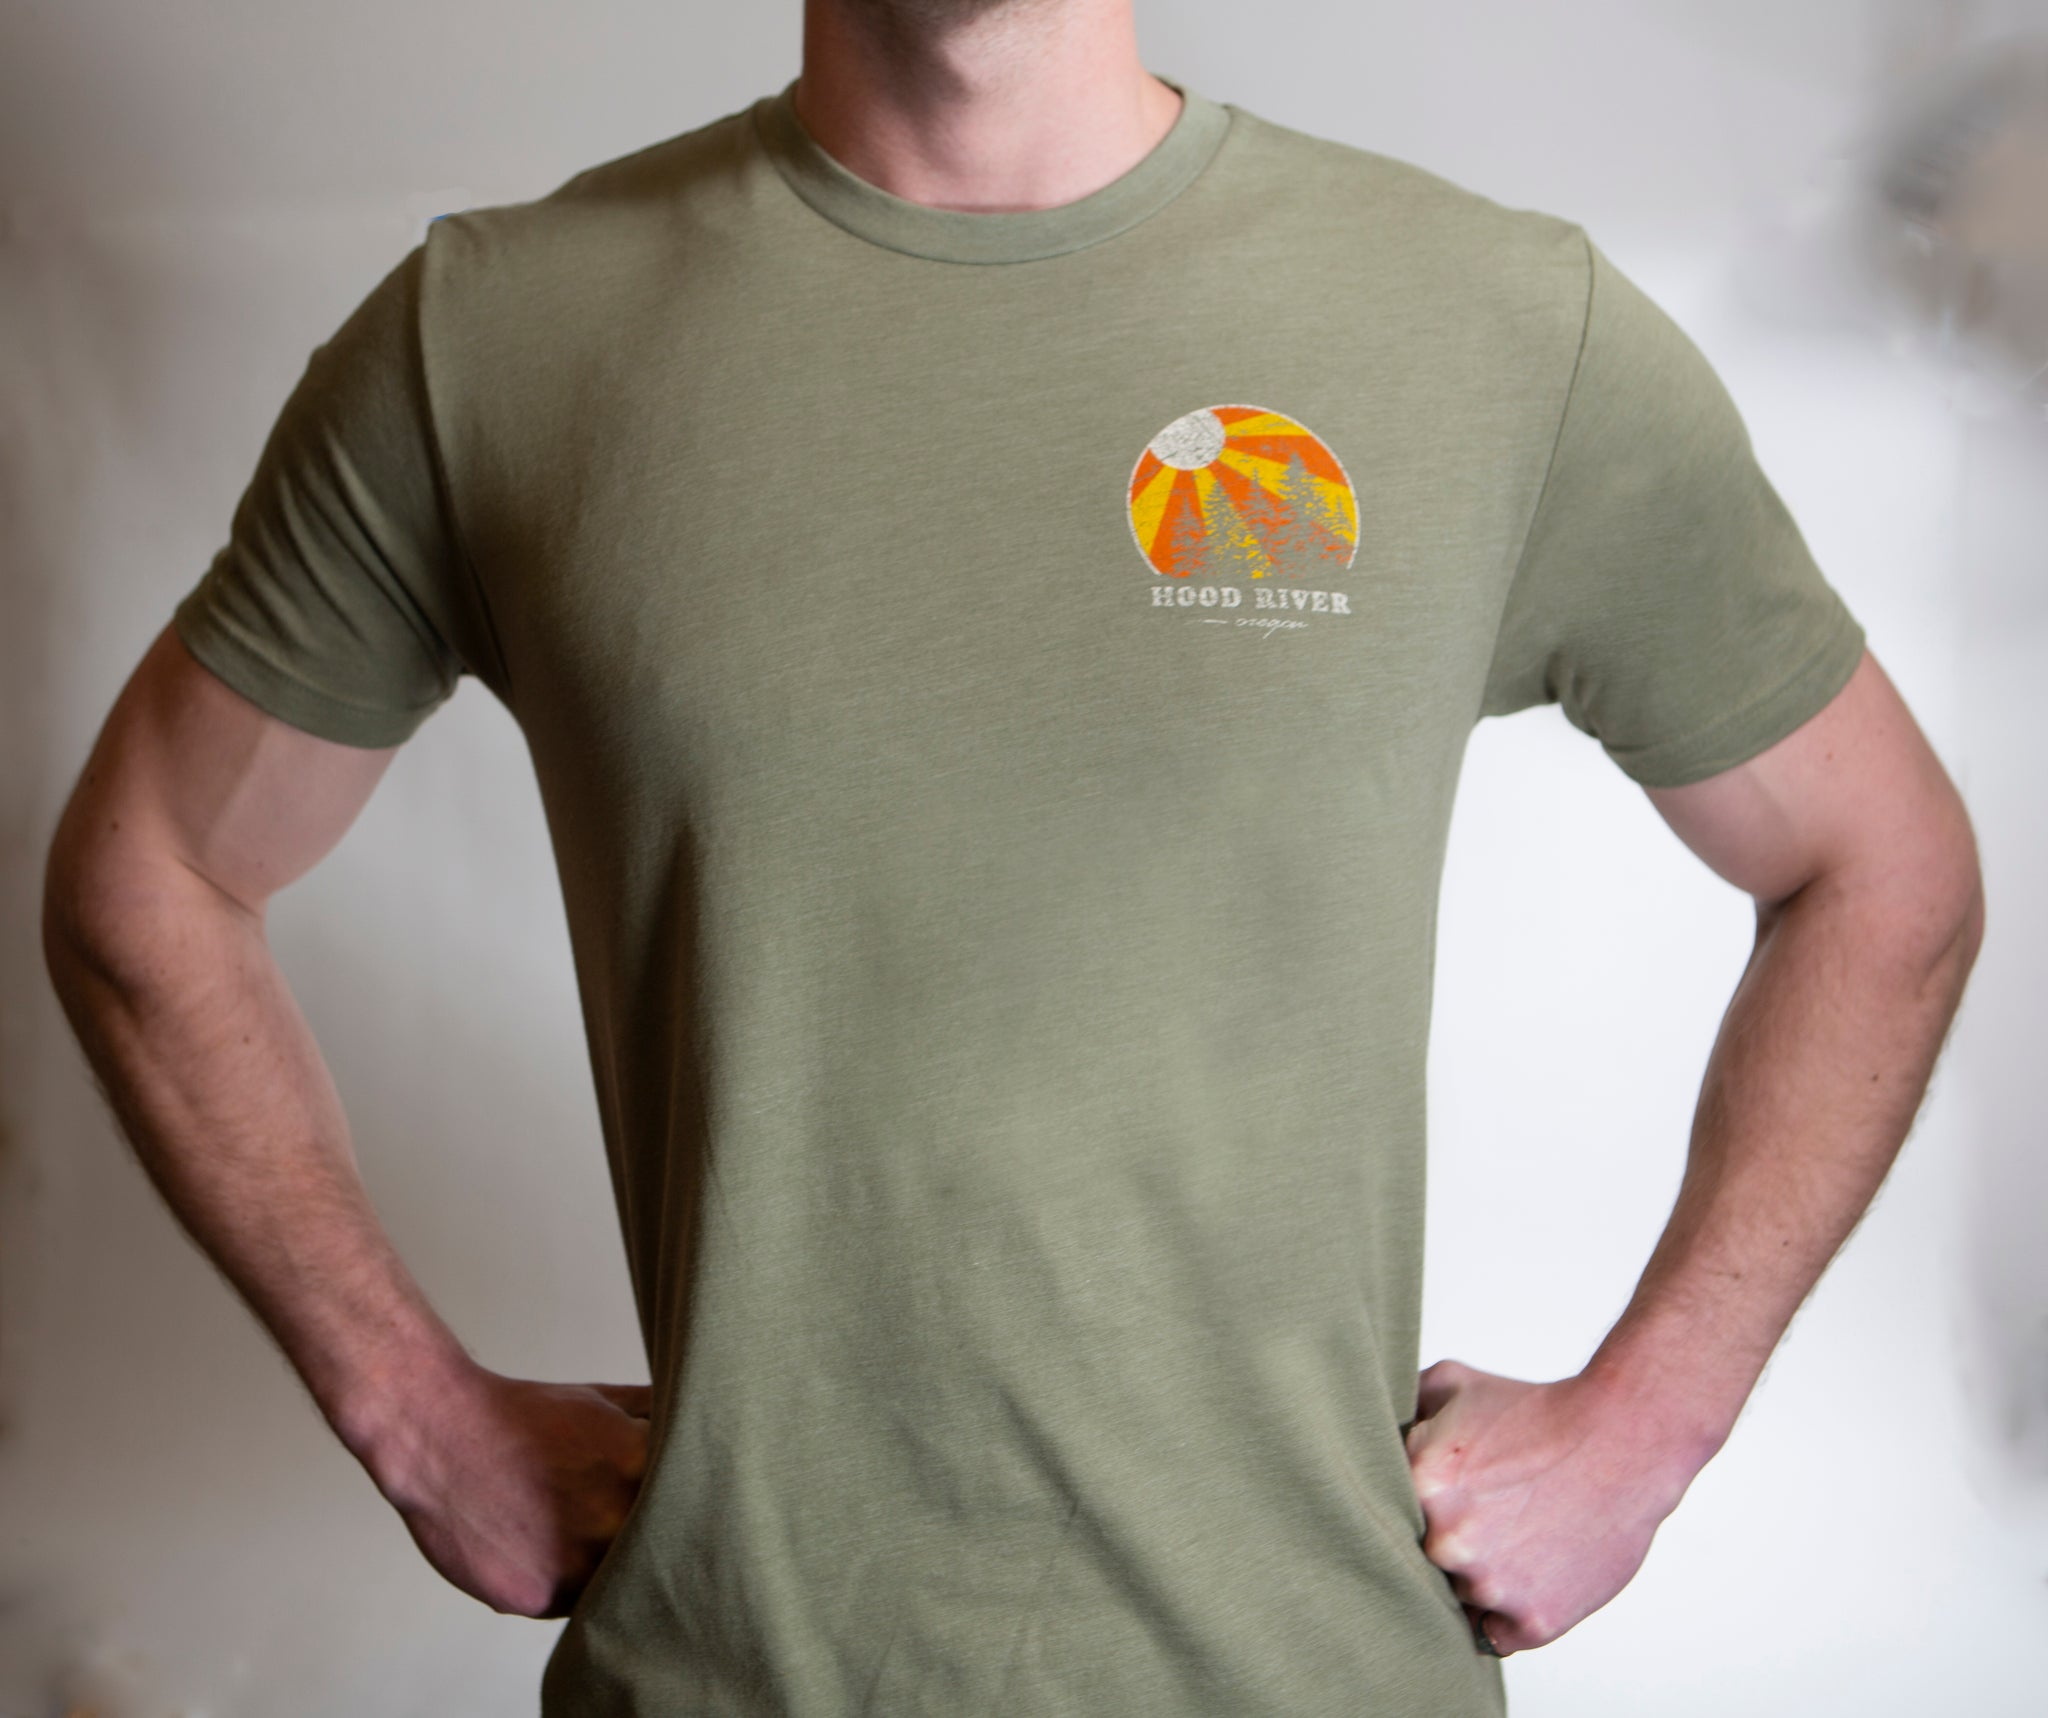 Men's Short Sleeve Hood River T  Shirt with  Sunburst Logo in Sage, Light Heather Gray  or Charcoal